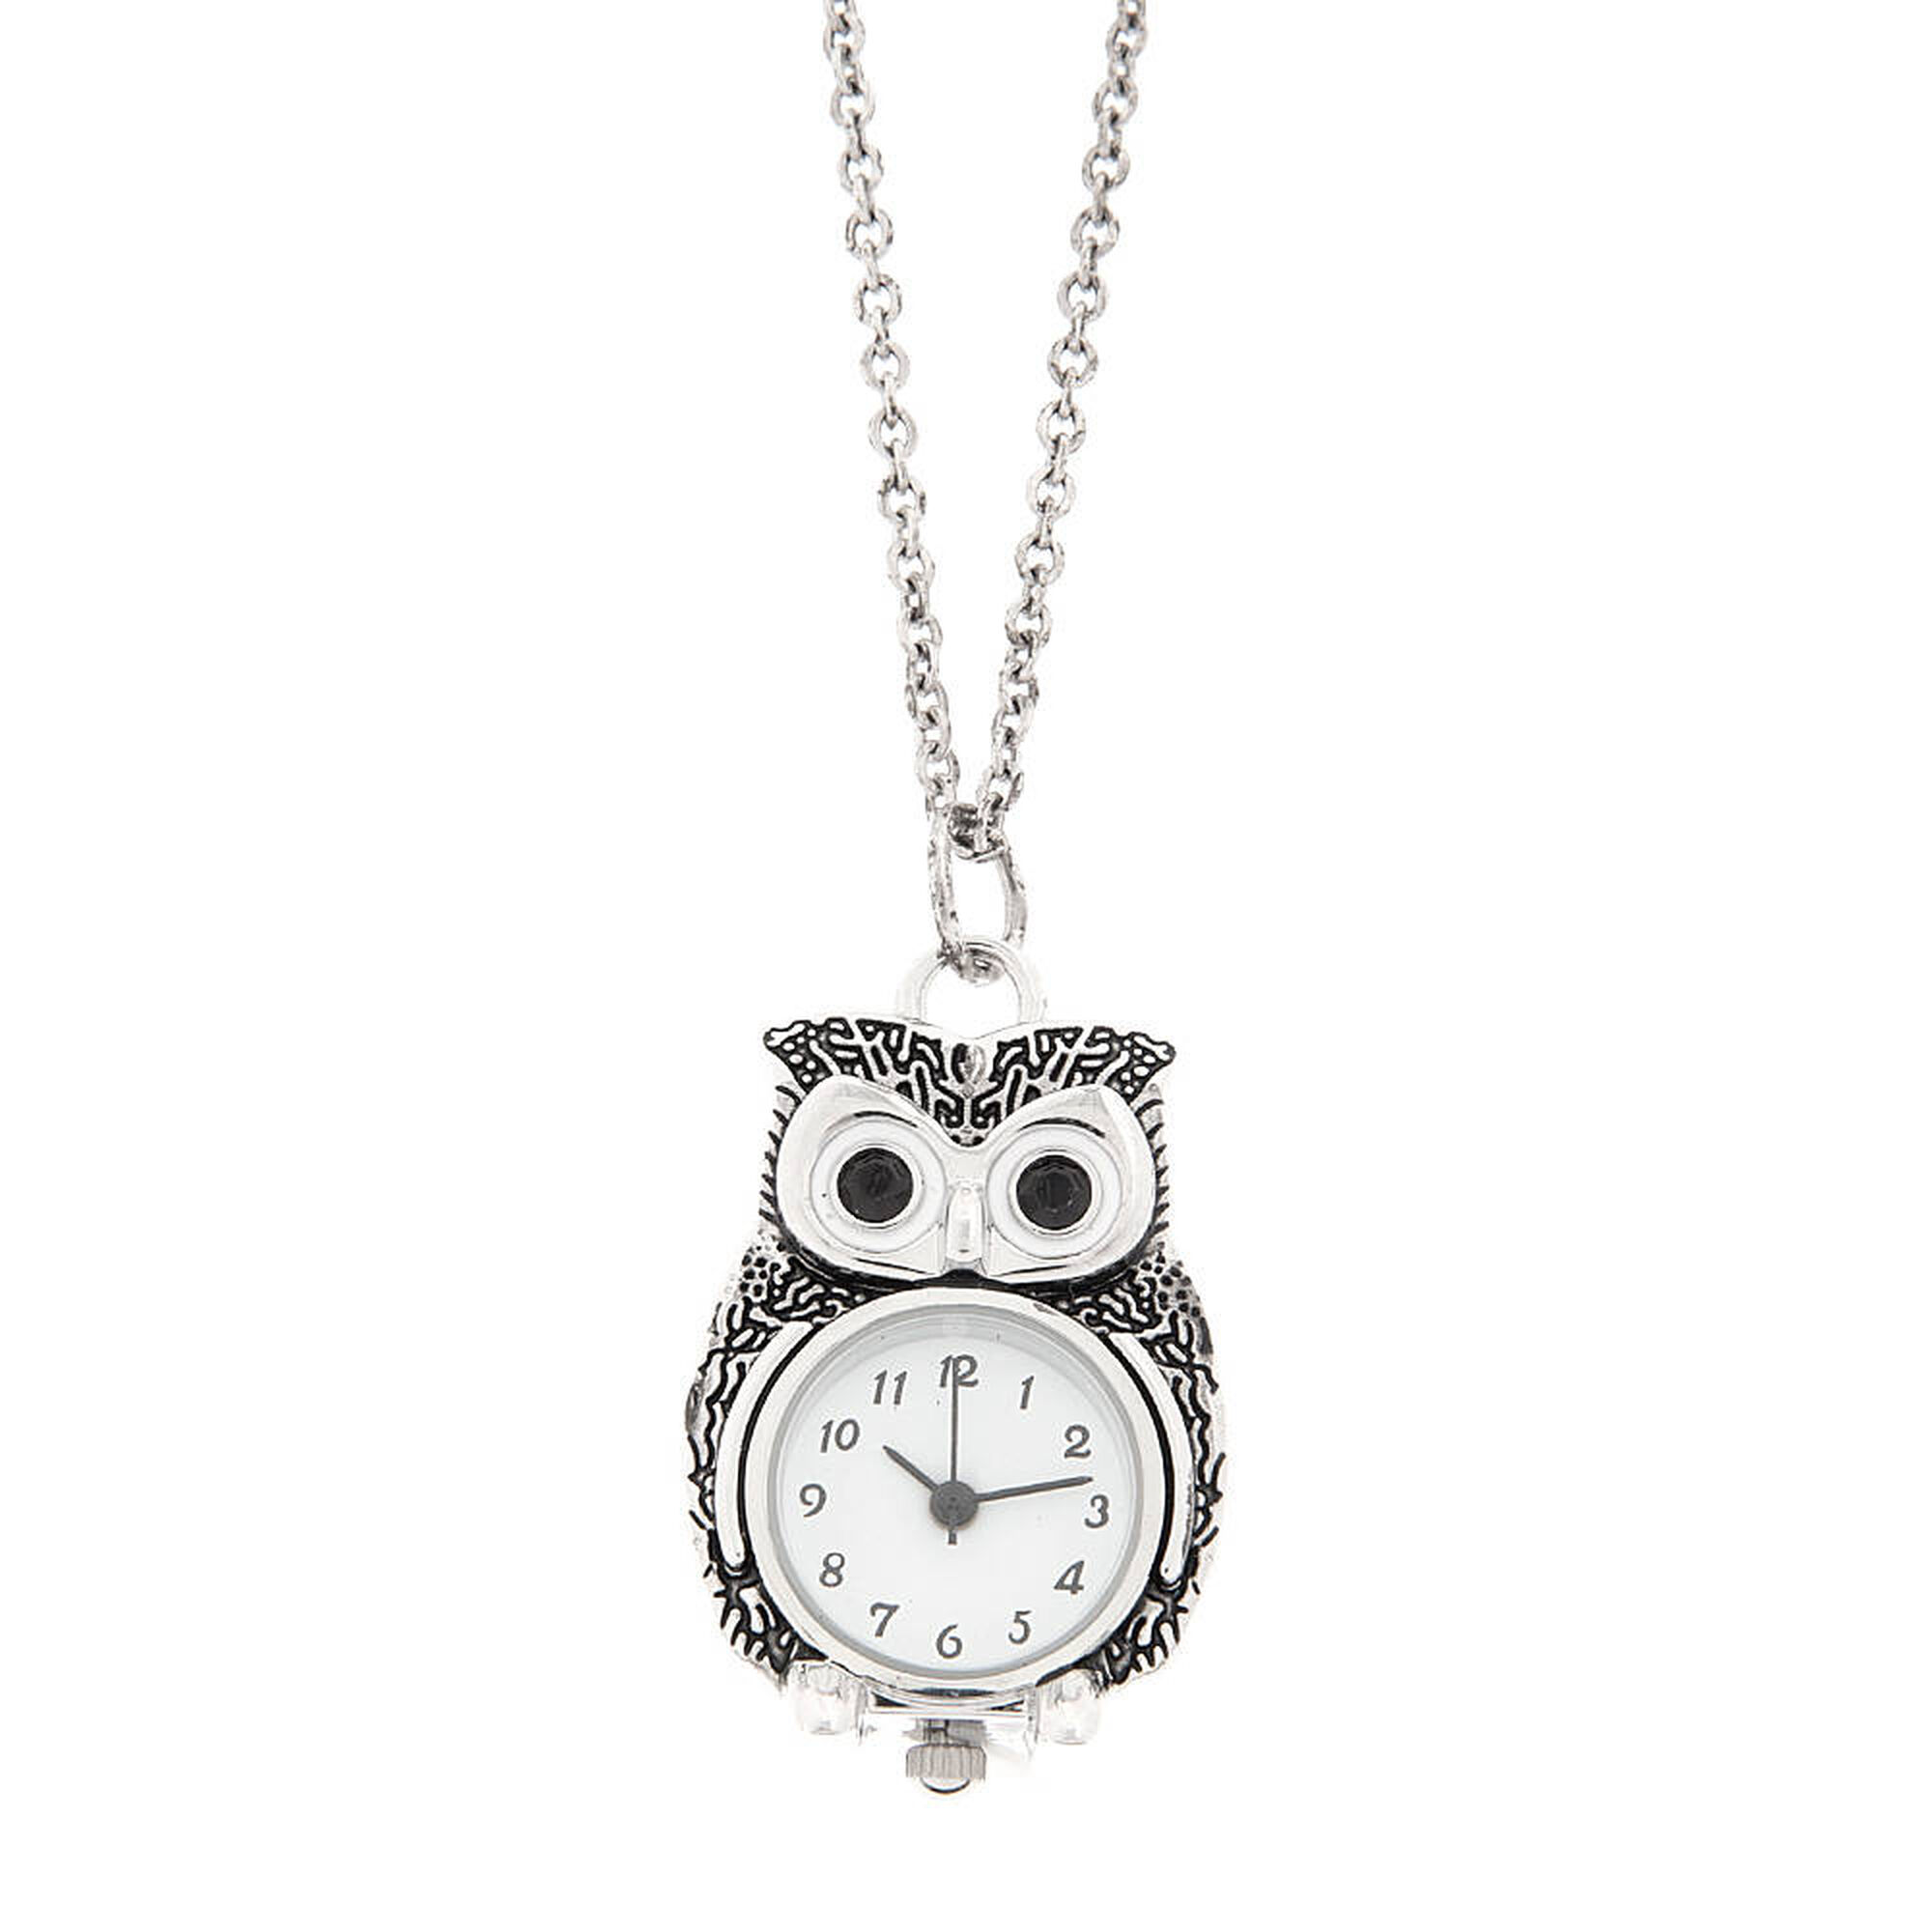 Antique silver owl pocket watch pendant necklace claires us antique silver owl pocket watch pendant necklace mozeypictures